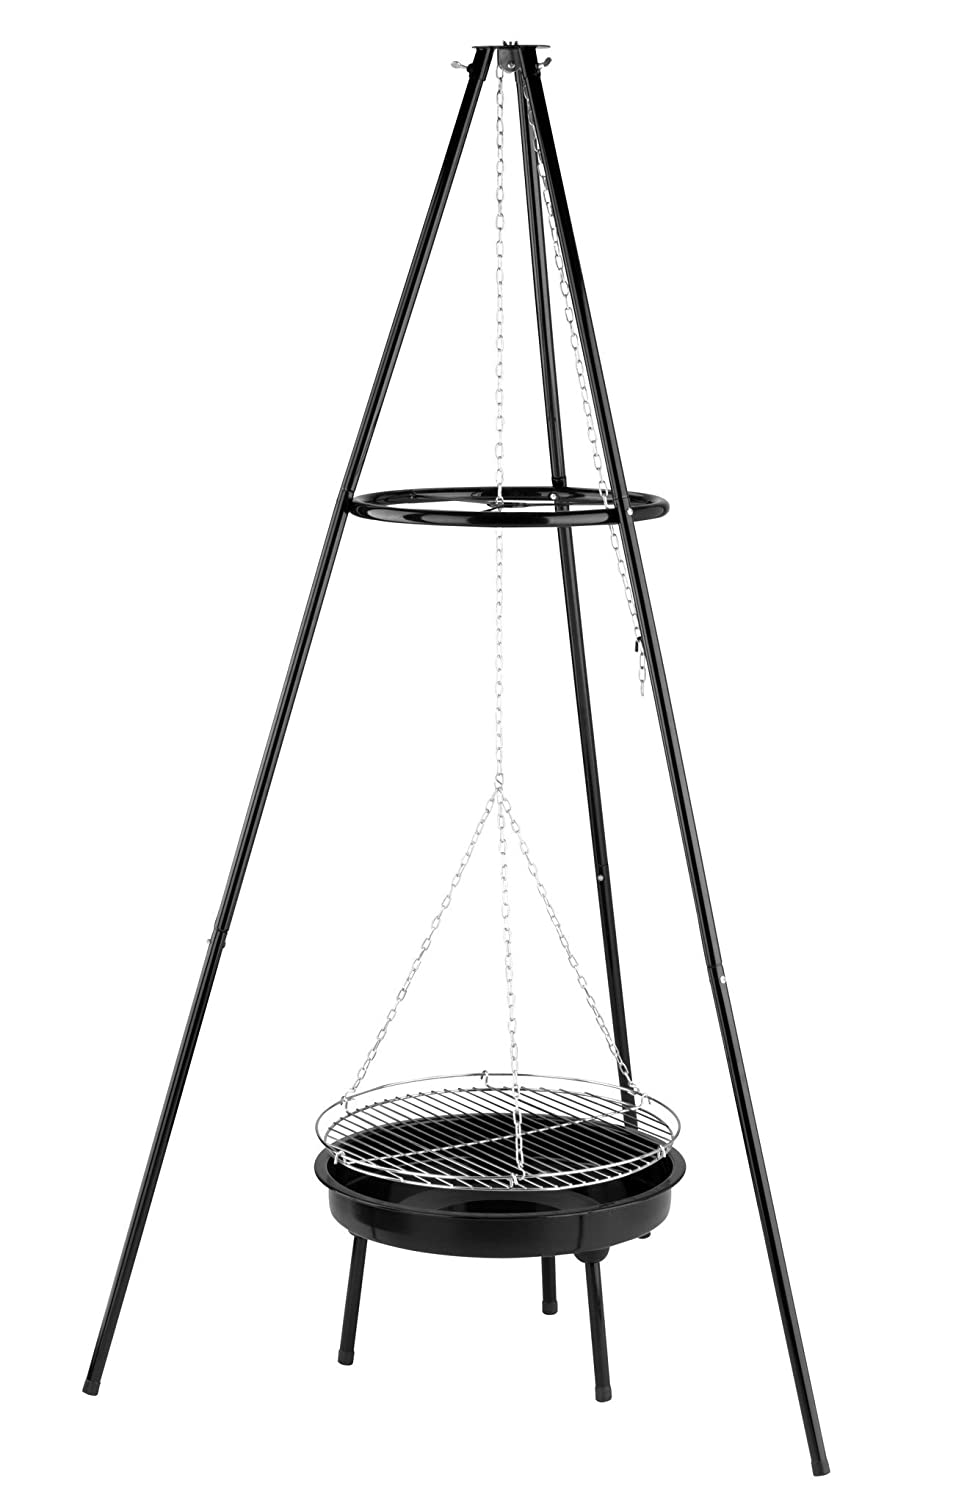 ACTIVA Indiana 11100 Swinging Suspended Barbecue